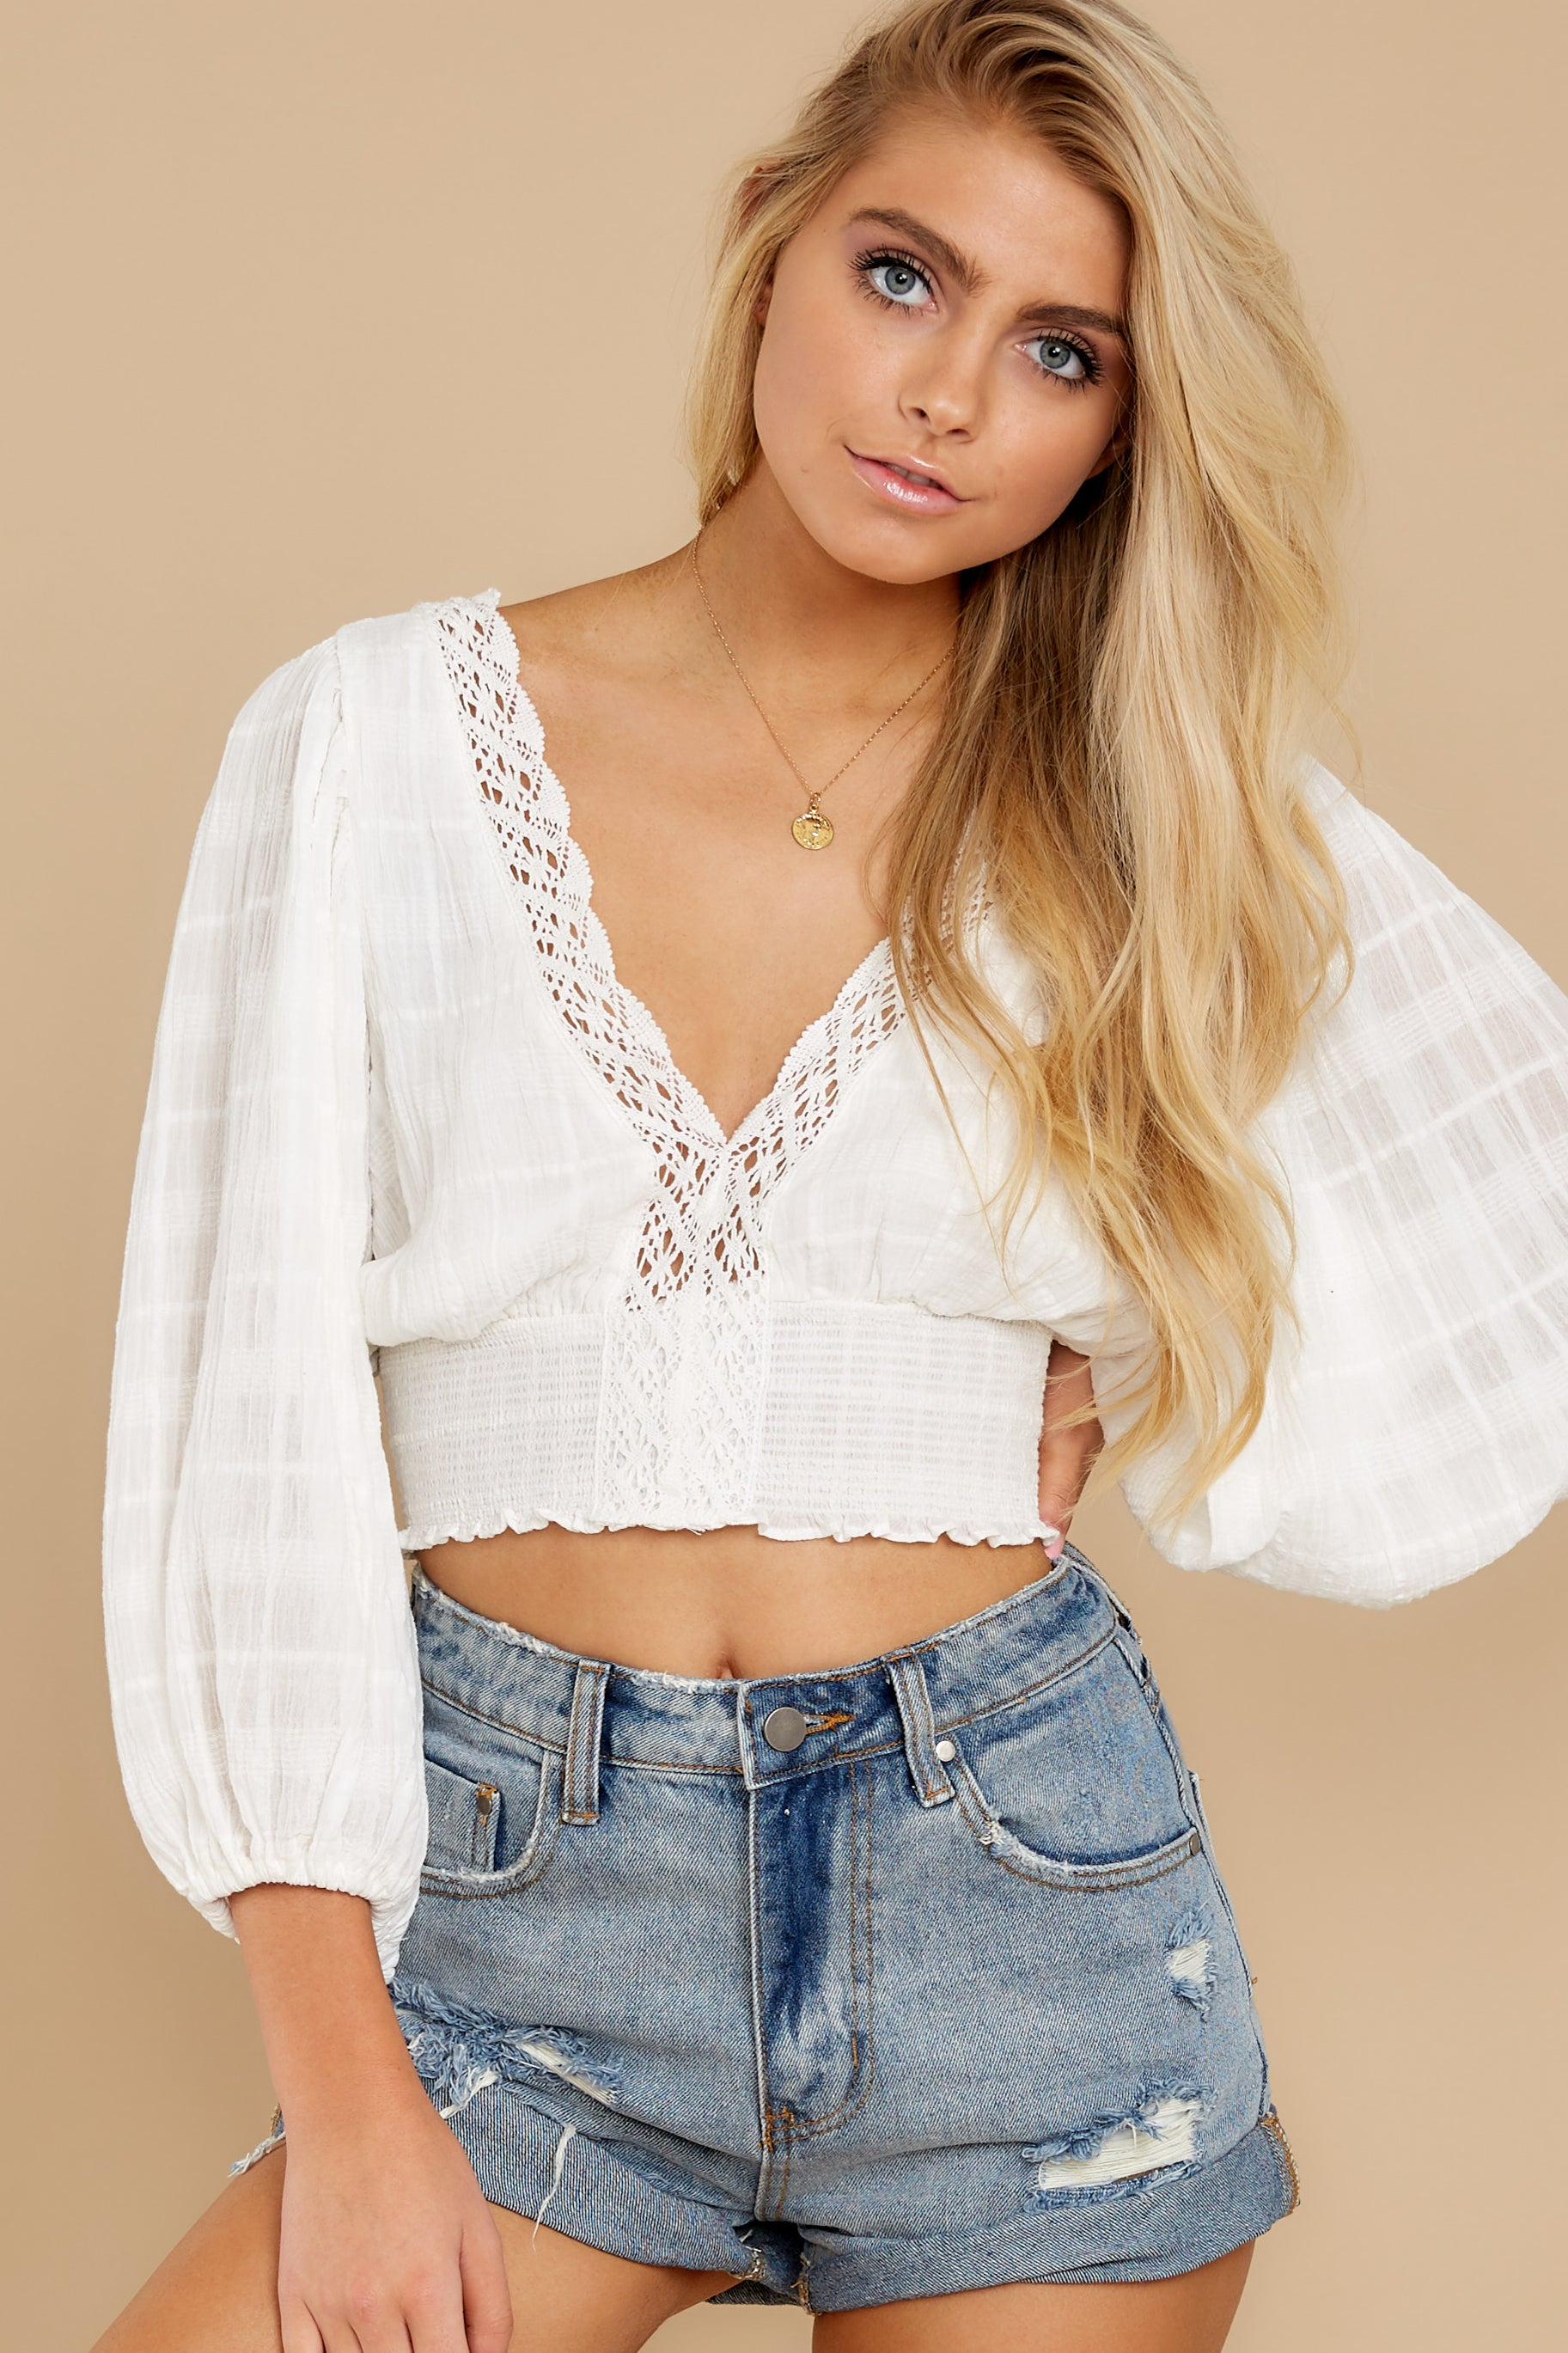 5 A Good Time White Lace Crop Top at reddress.com